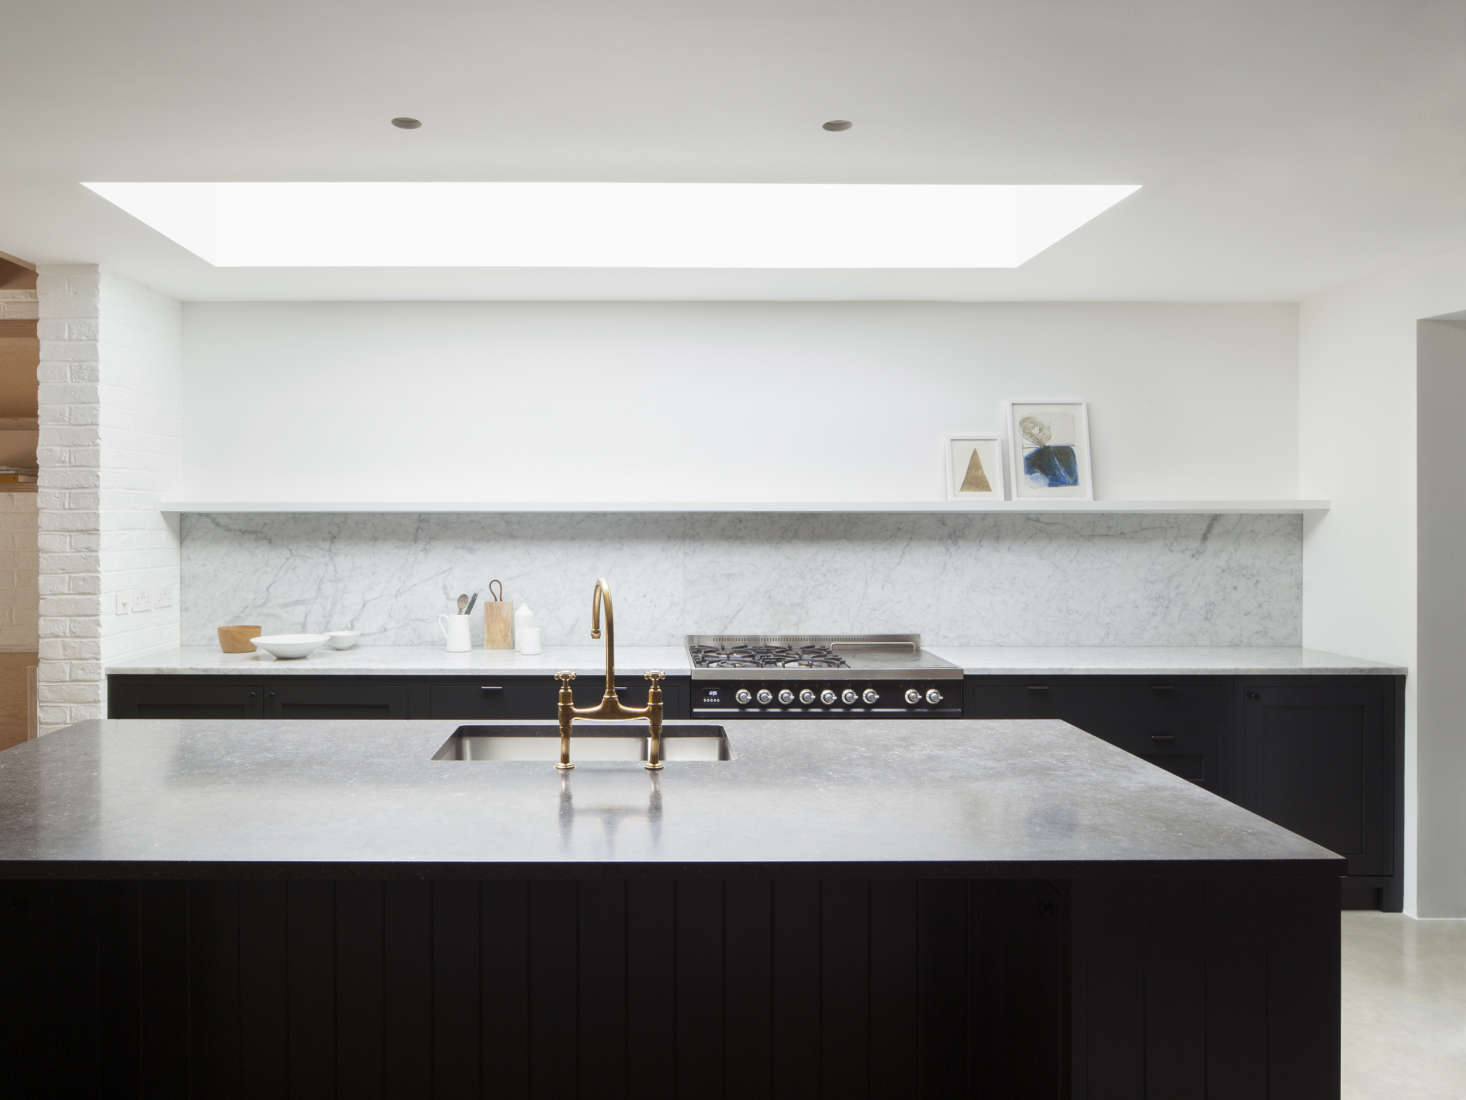 A new skylight over the kitchen helps to naturally illuminate the space, which is painted in Farrow & Ball Wimborne White—just one shade away from pure white. The custom cabinets by Handmade Kitchens are finished in blue-black Railings paint, also by Farrow & Ball. The Carrara marble counter and backsplash are from Rossi Stoneworks and the island top is Belgian bluestone. The range is the Ilve Roma Twin Range Cooker; it's the only visible appliance in the kitchen; others are panel-ready Bosch appliances. The island faucet is Perrin & Rowe&#8